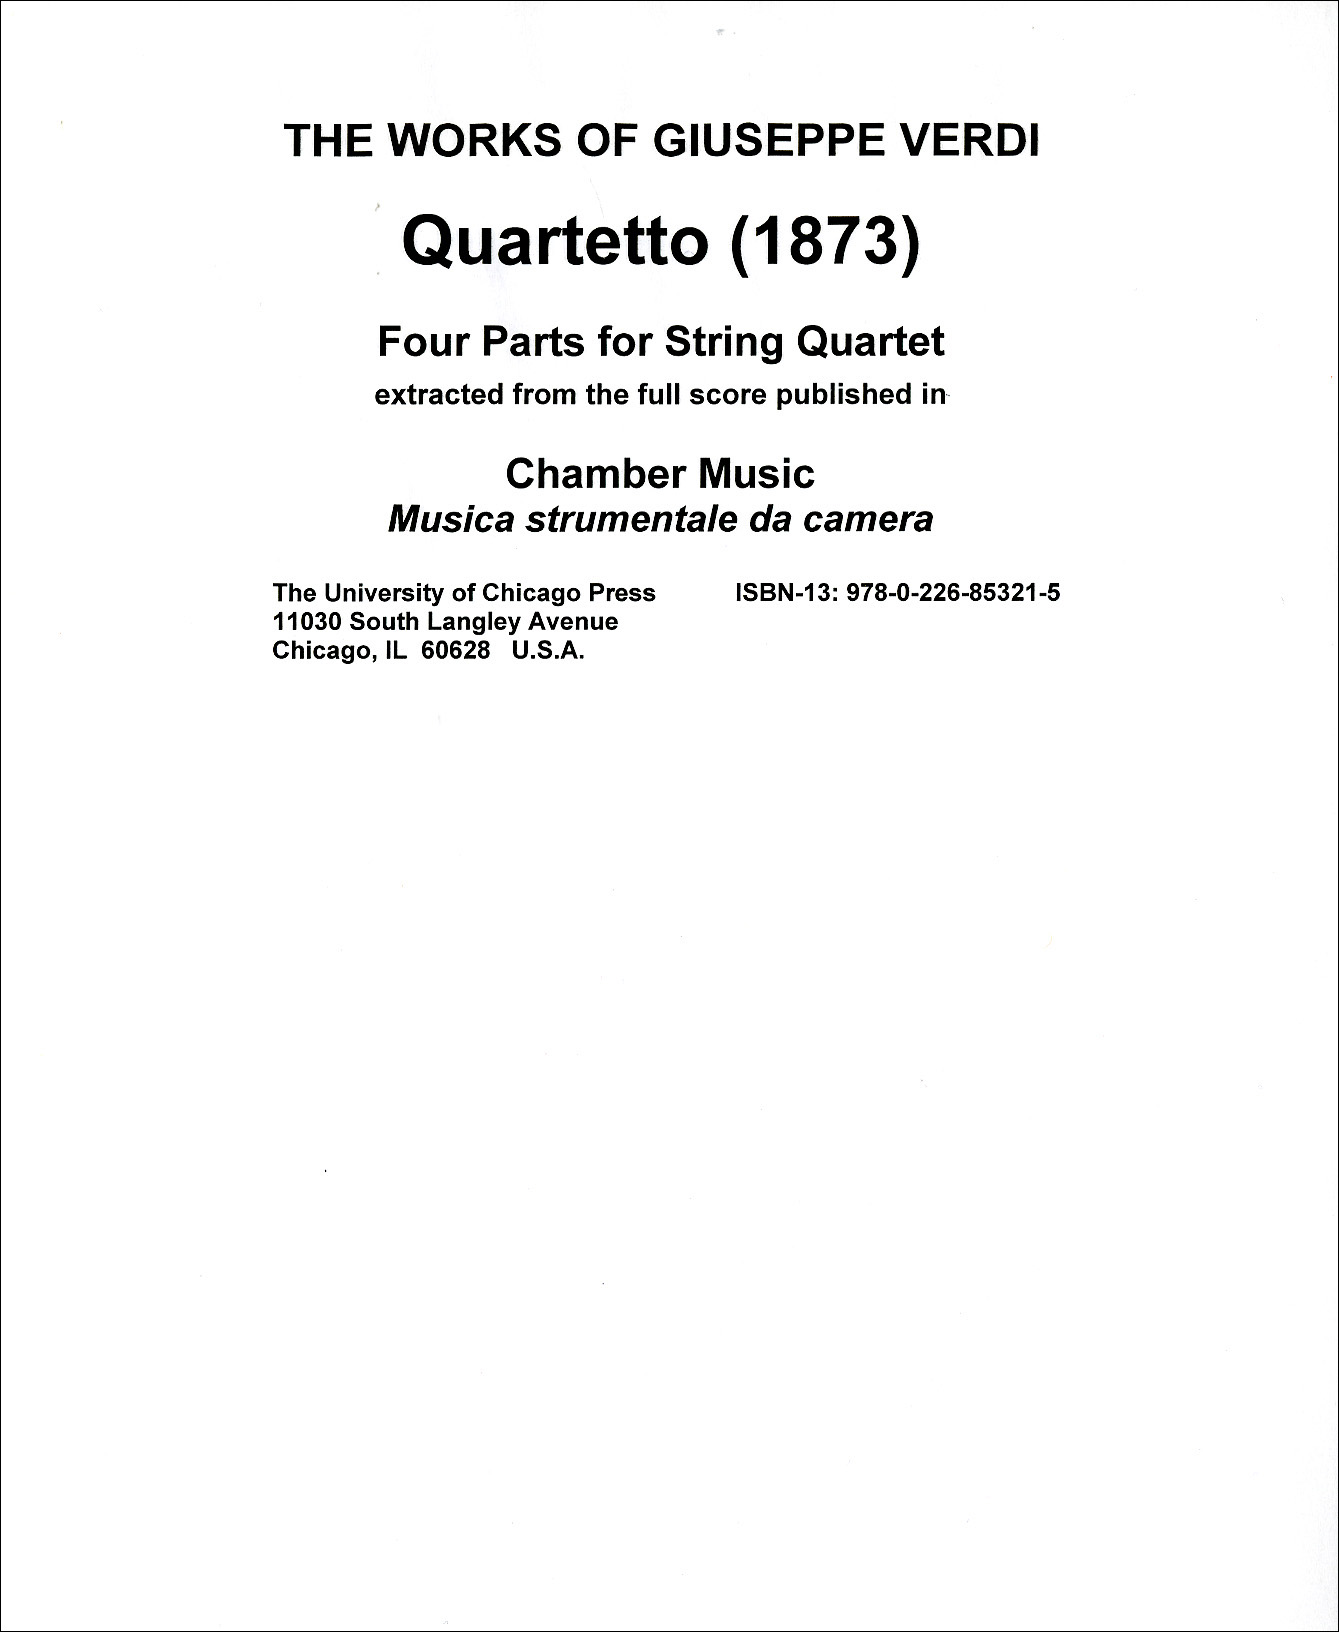 Quartetto: Four Parts for String Quartet